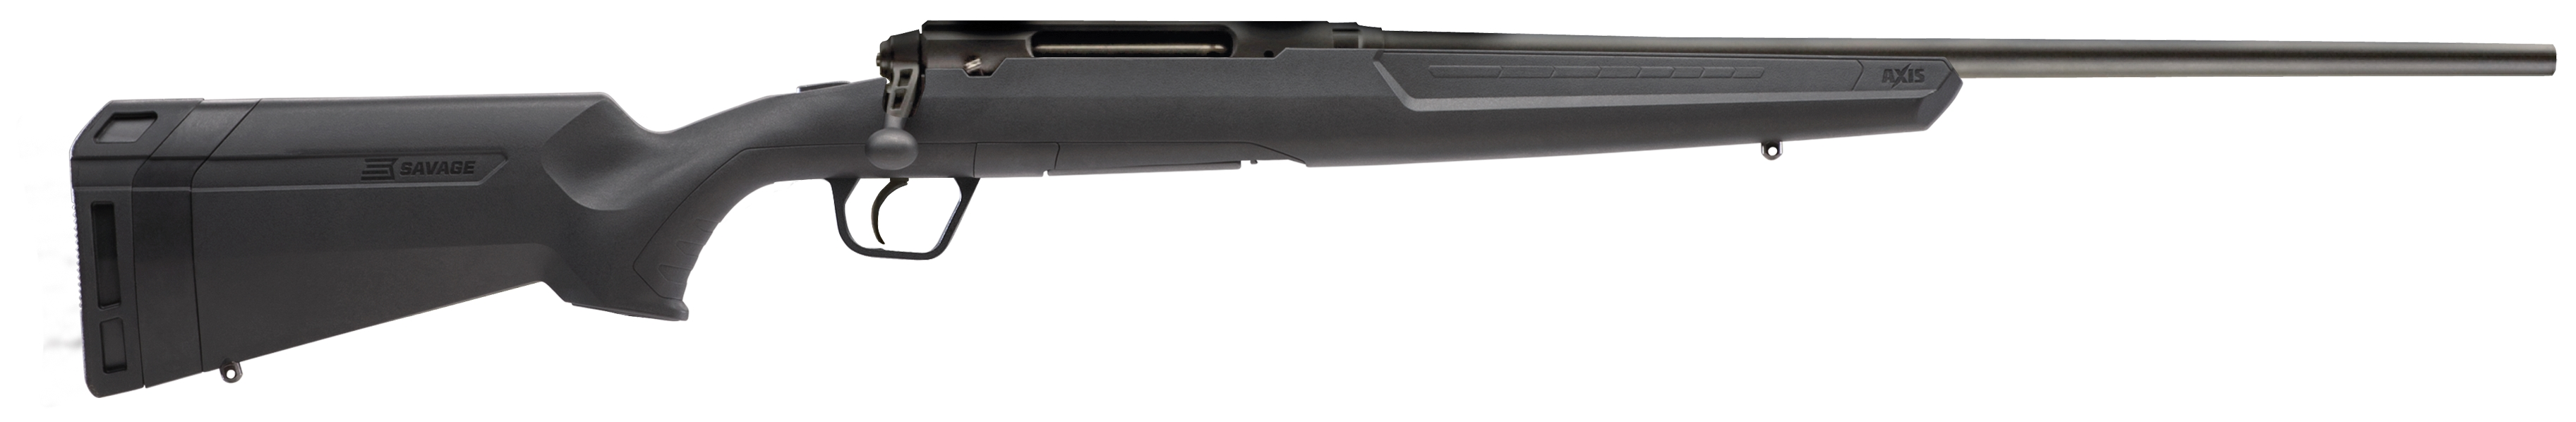 Savage Arms Axis 30-06